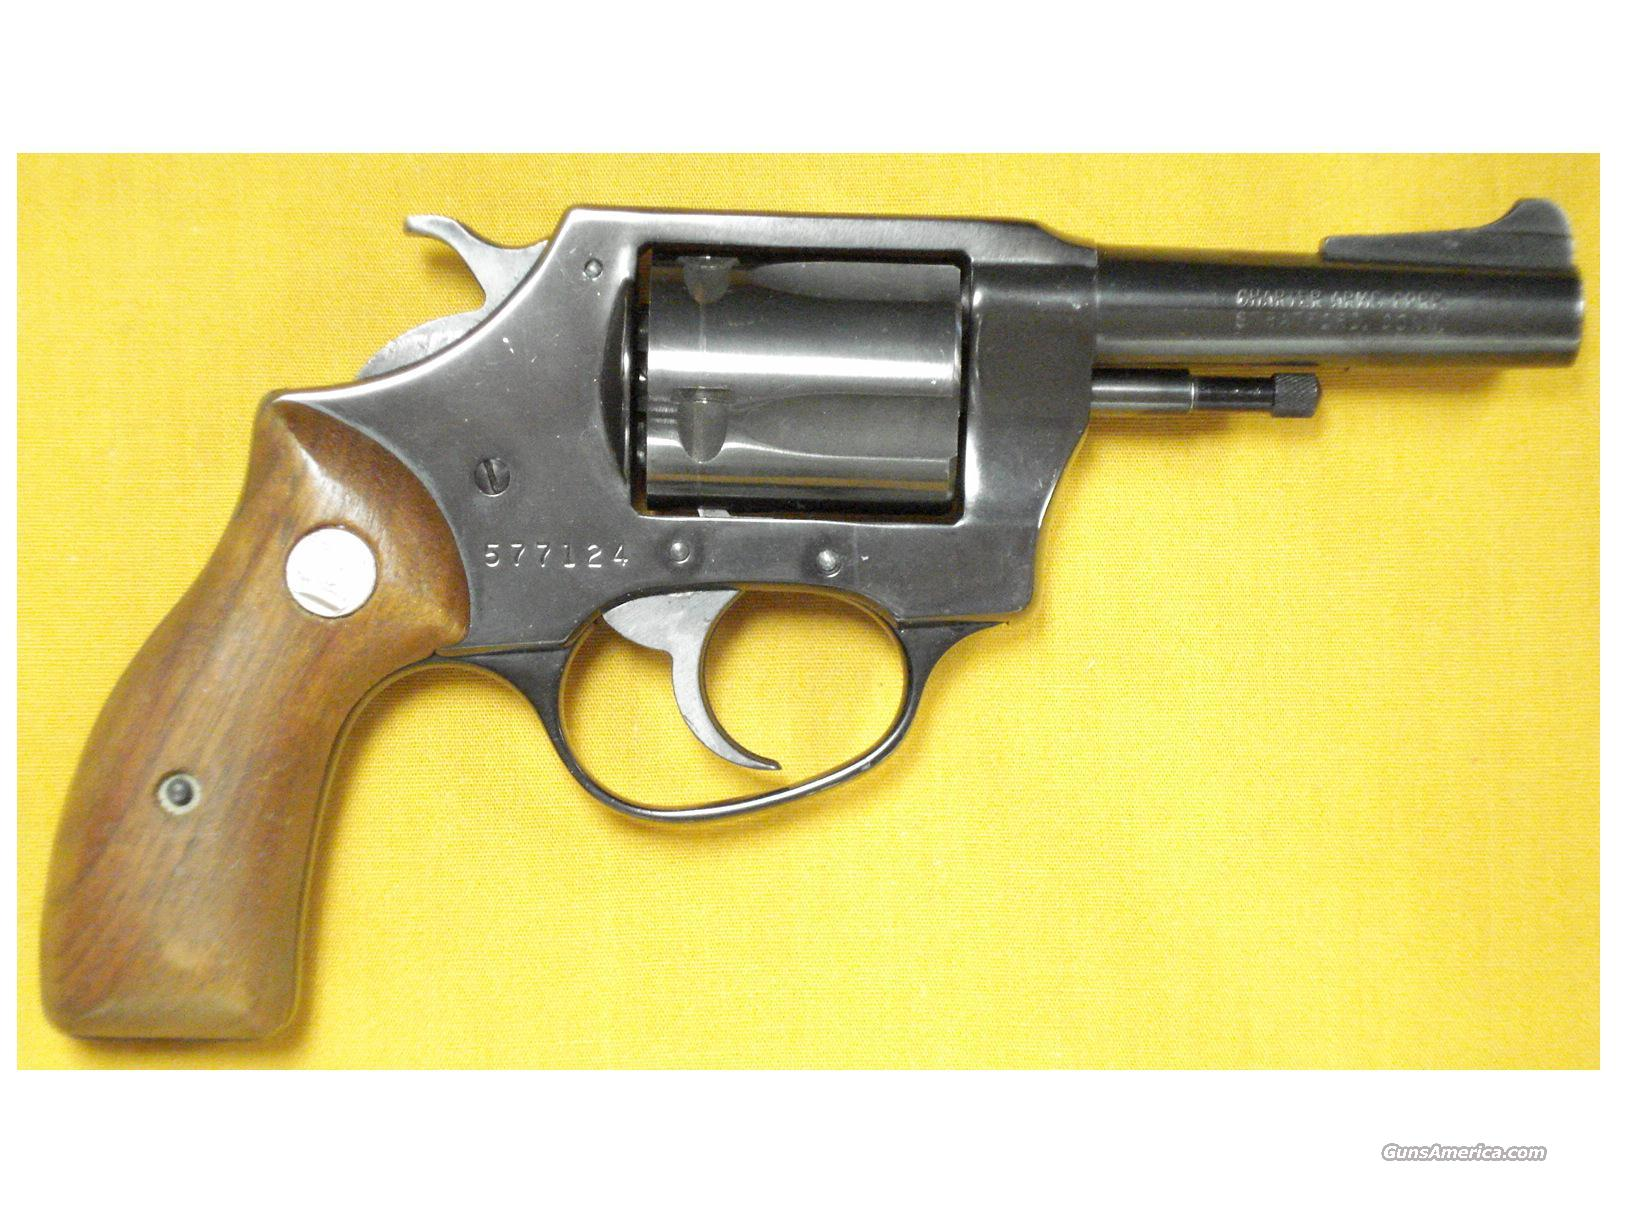 "CHARTER ARMS UNDERCOVER .38 3""BBL  Guns > Pistols > Charter Arms Revolvers"